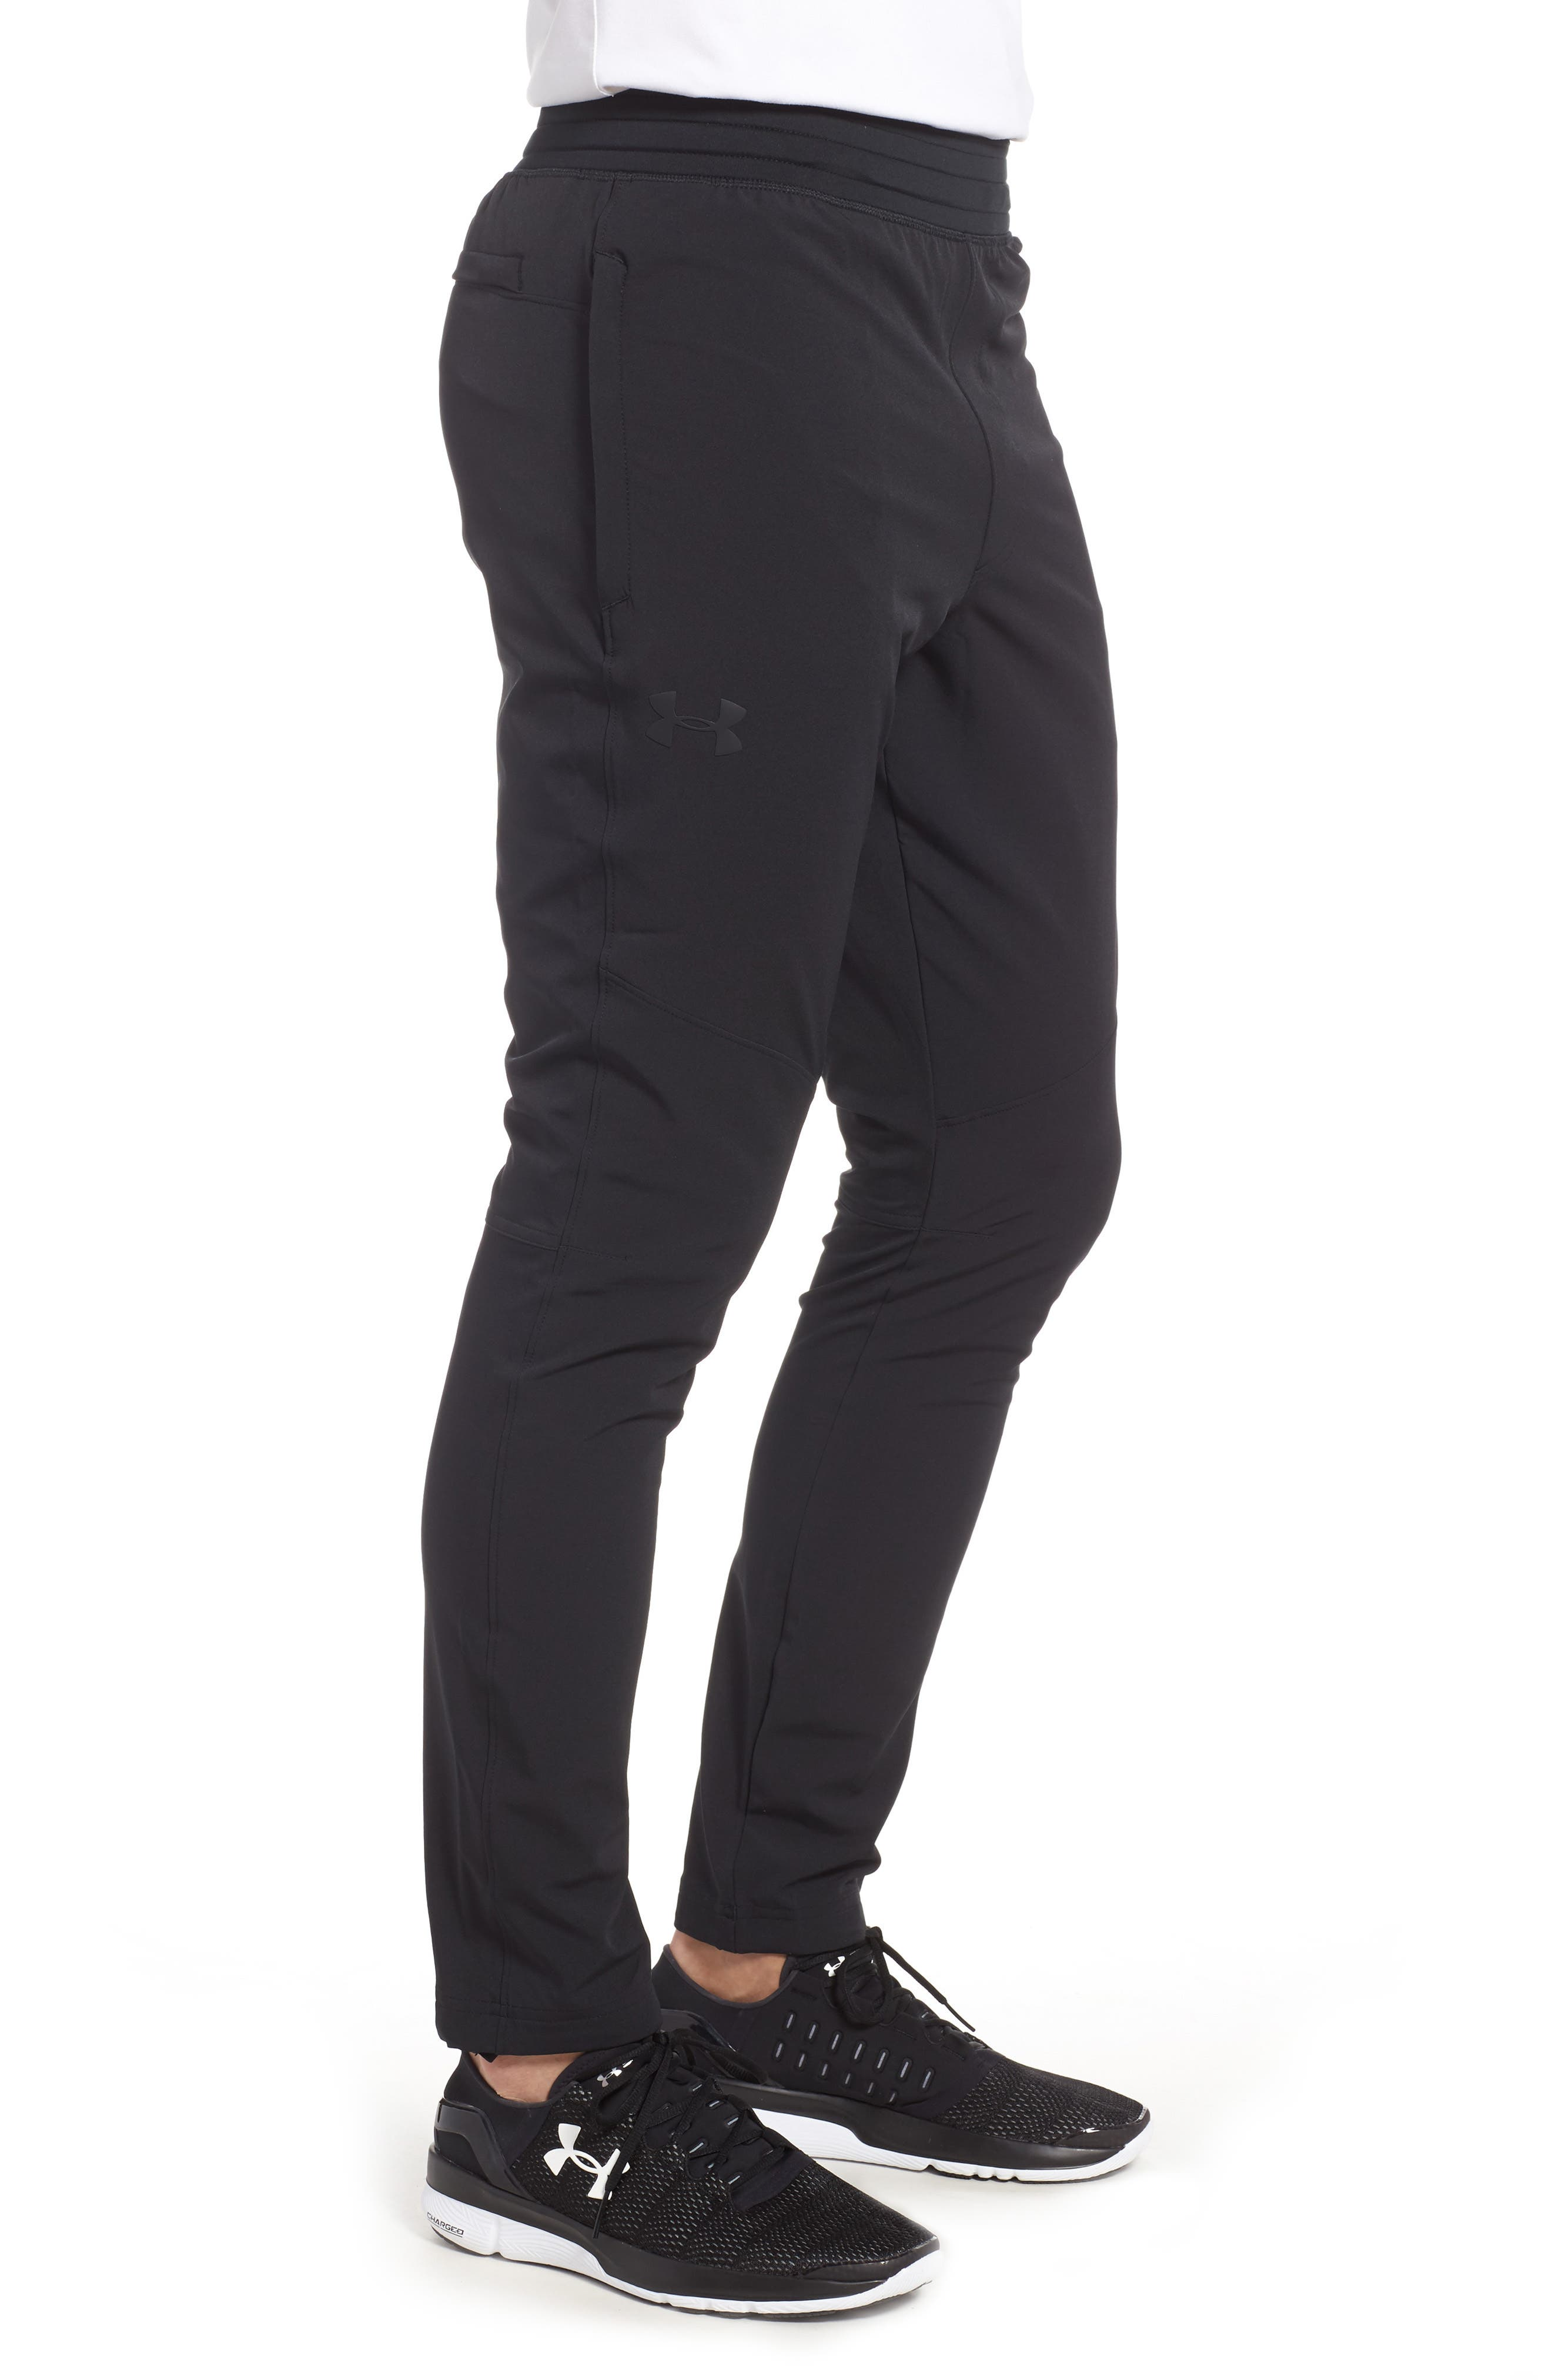 Fitted Woven Training Pants,                             Alternate thumbnail 3, color,                             BLACK